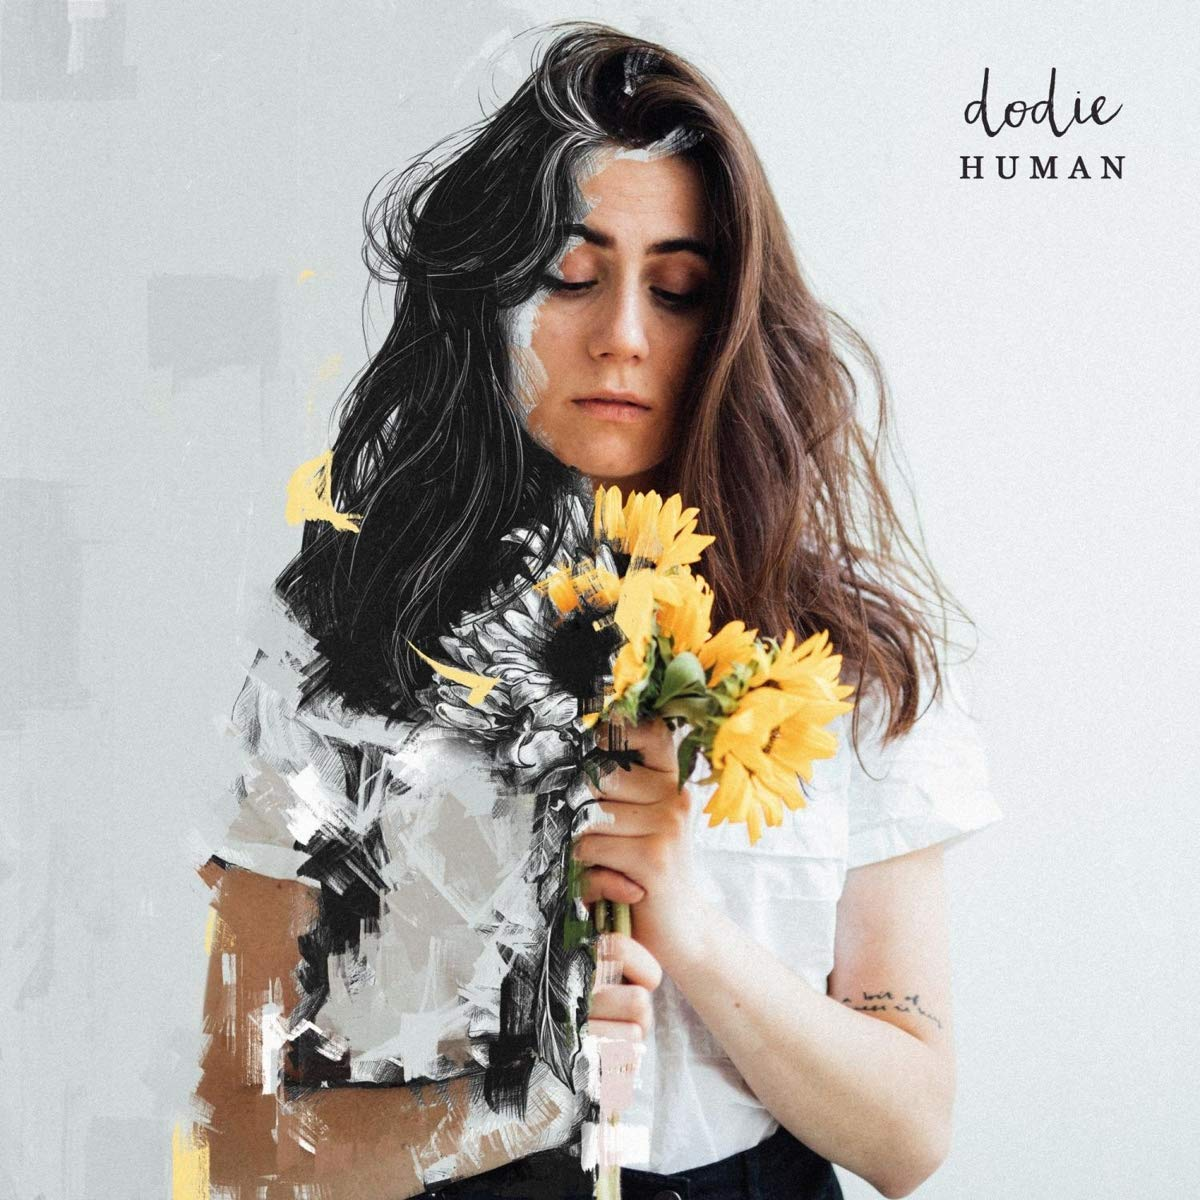 Album cover art of Dodie holding a boquet of sunflowers; half of the photo has been stylized to look like a sketch with paint splotches